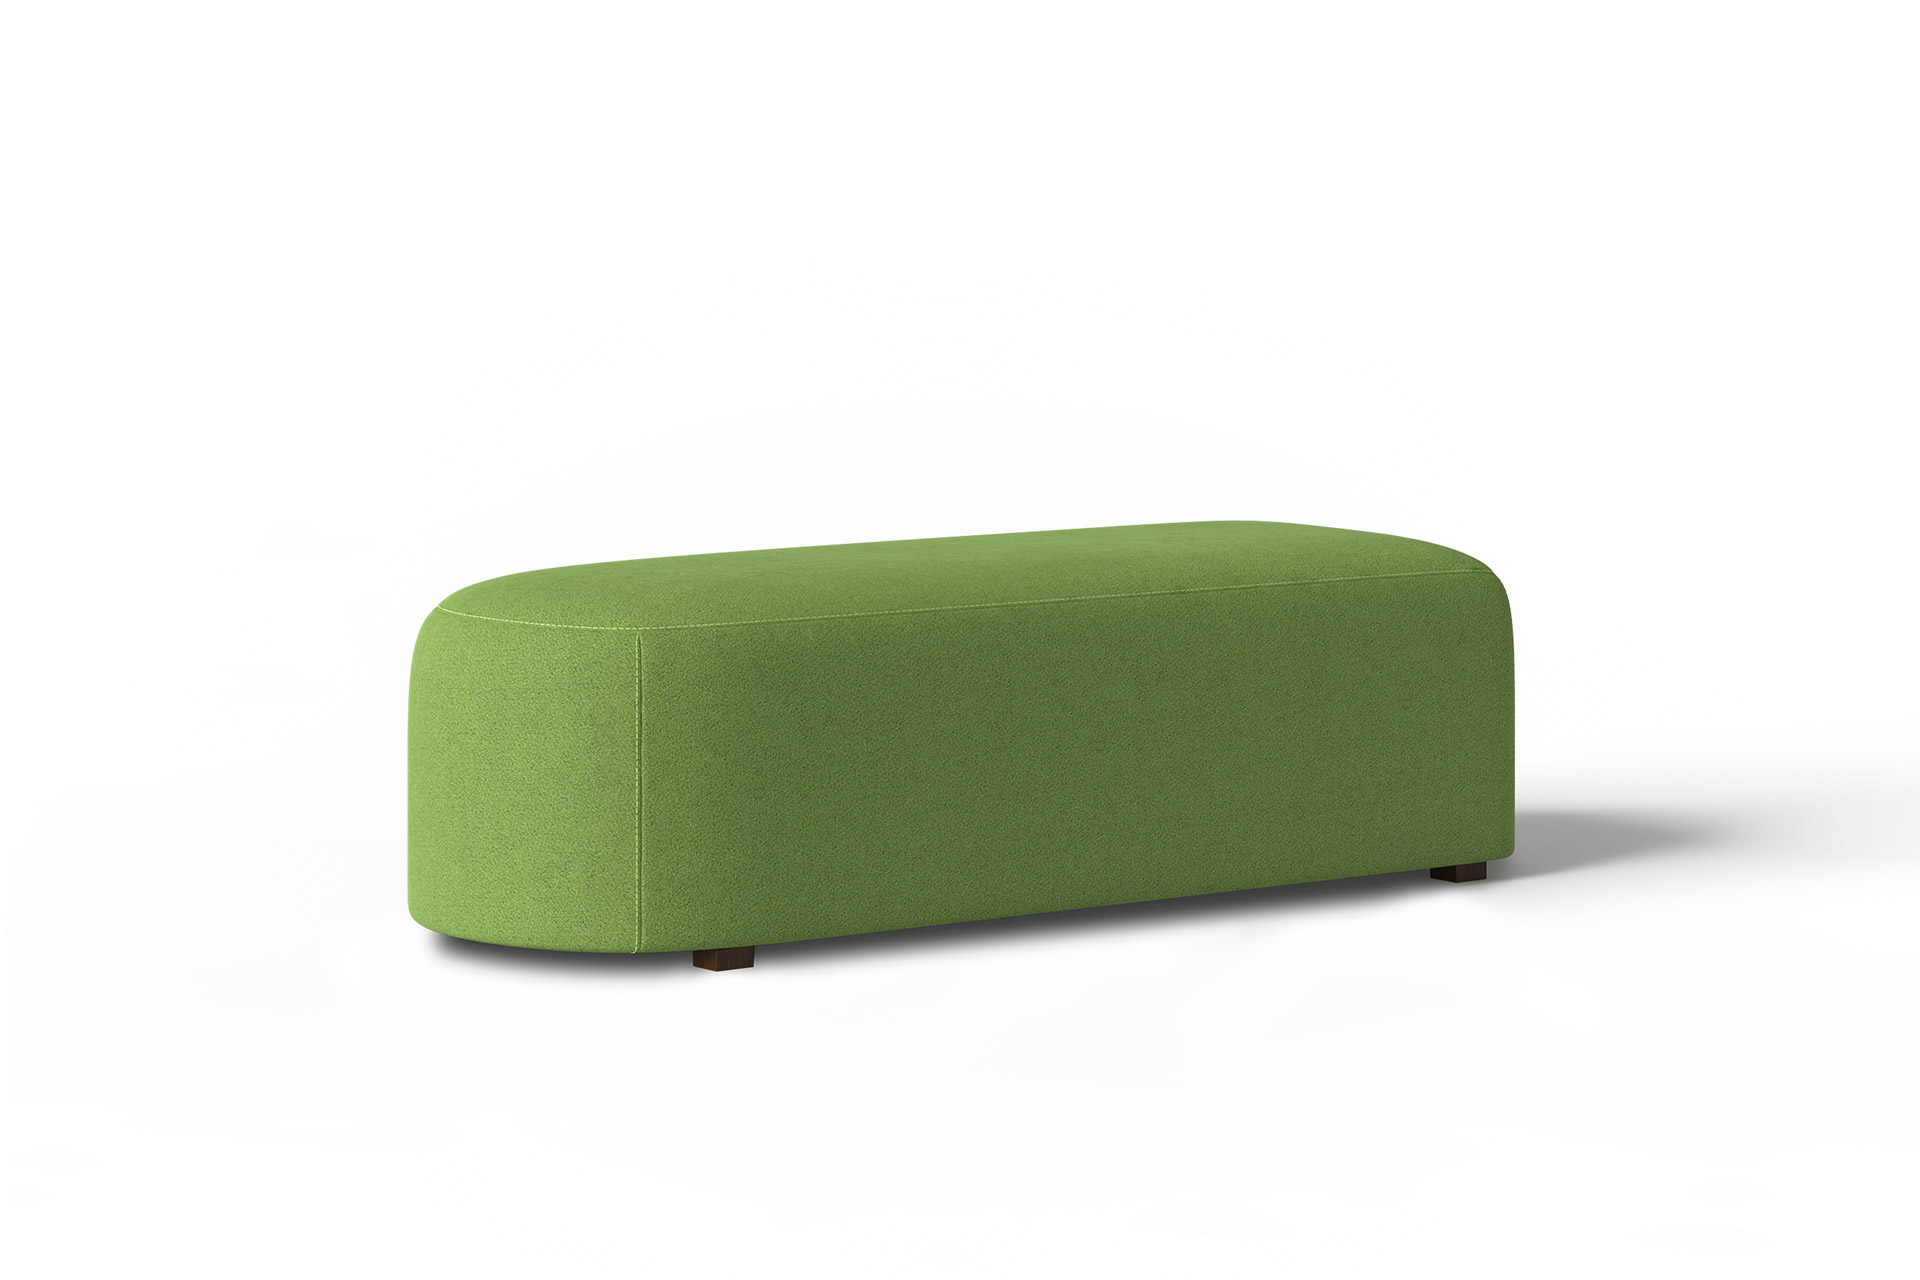 loft-and-manor-switch-modular-lounge-peninsula-ottoman-2